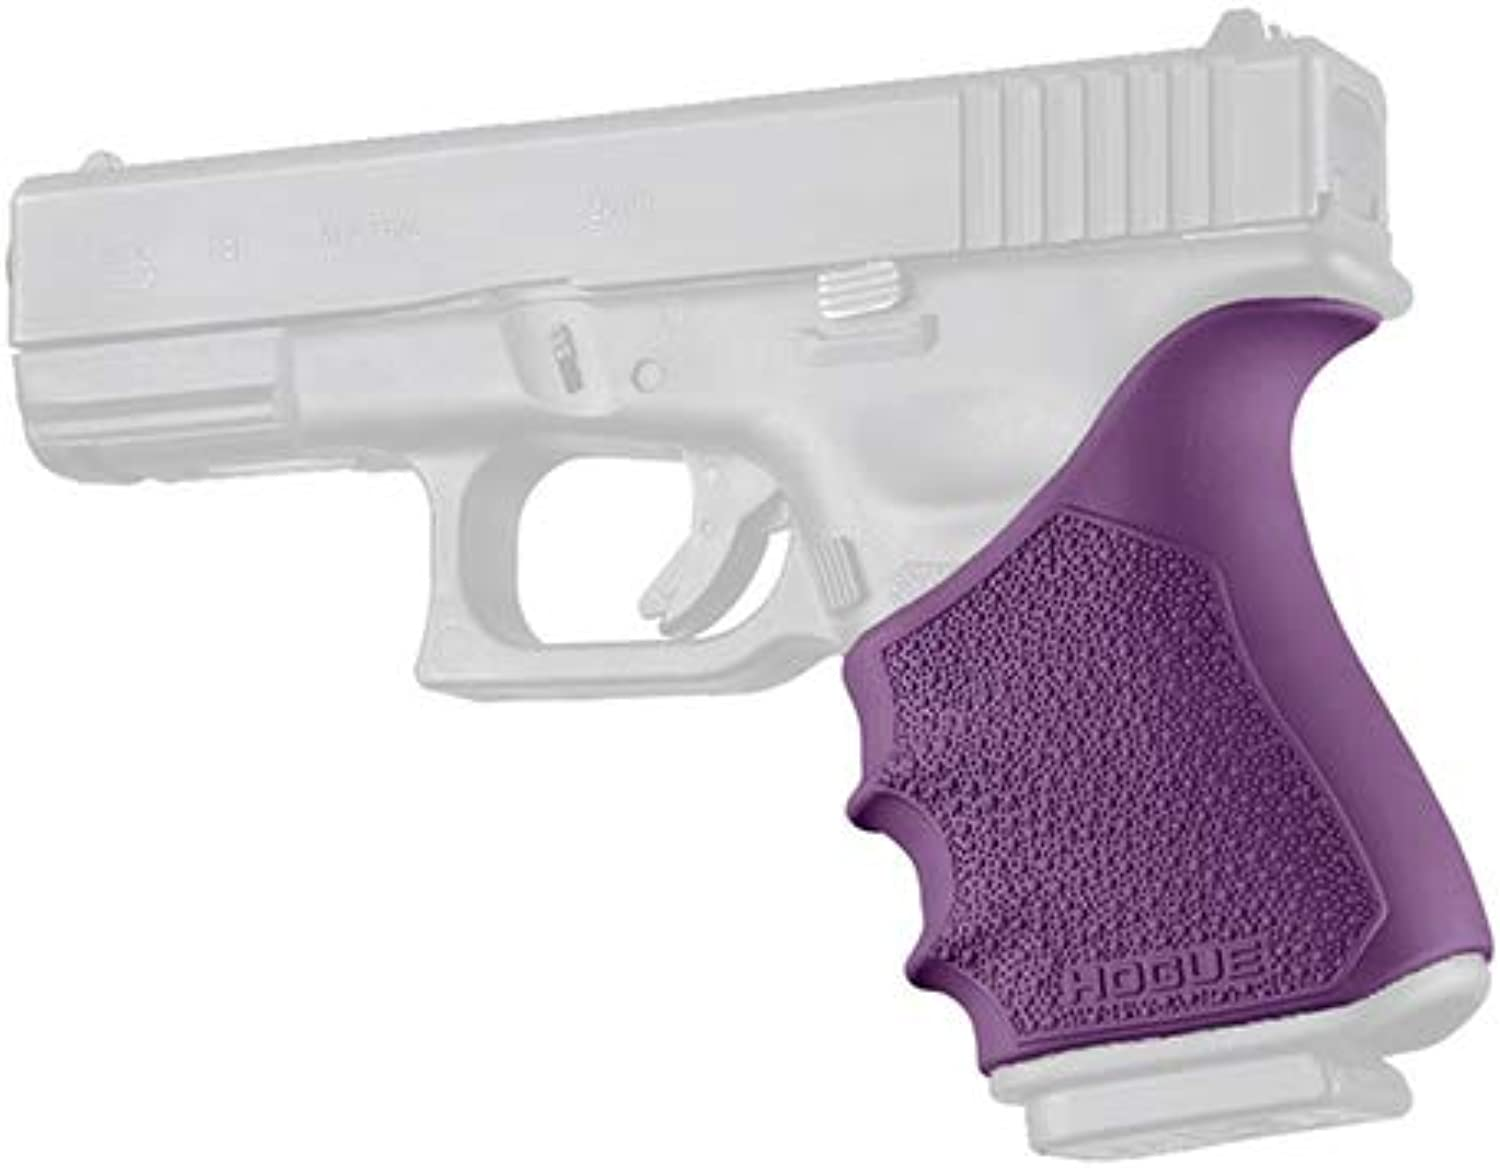 Hogue 17046 HandAll Beagreenail Grip Sleeve, Glock 19 Gen 34, Purple